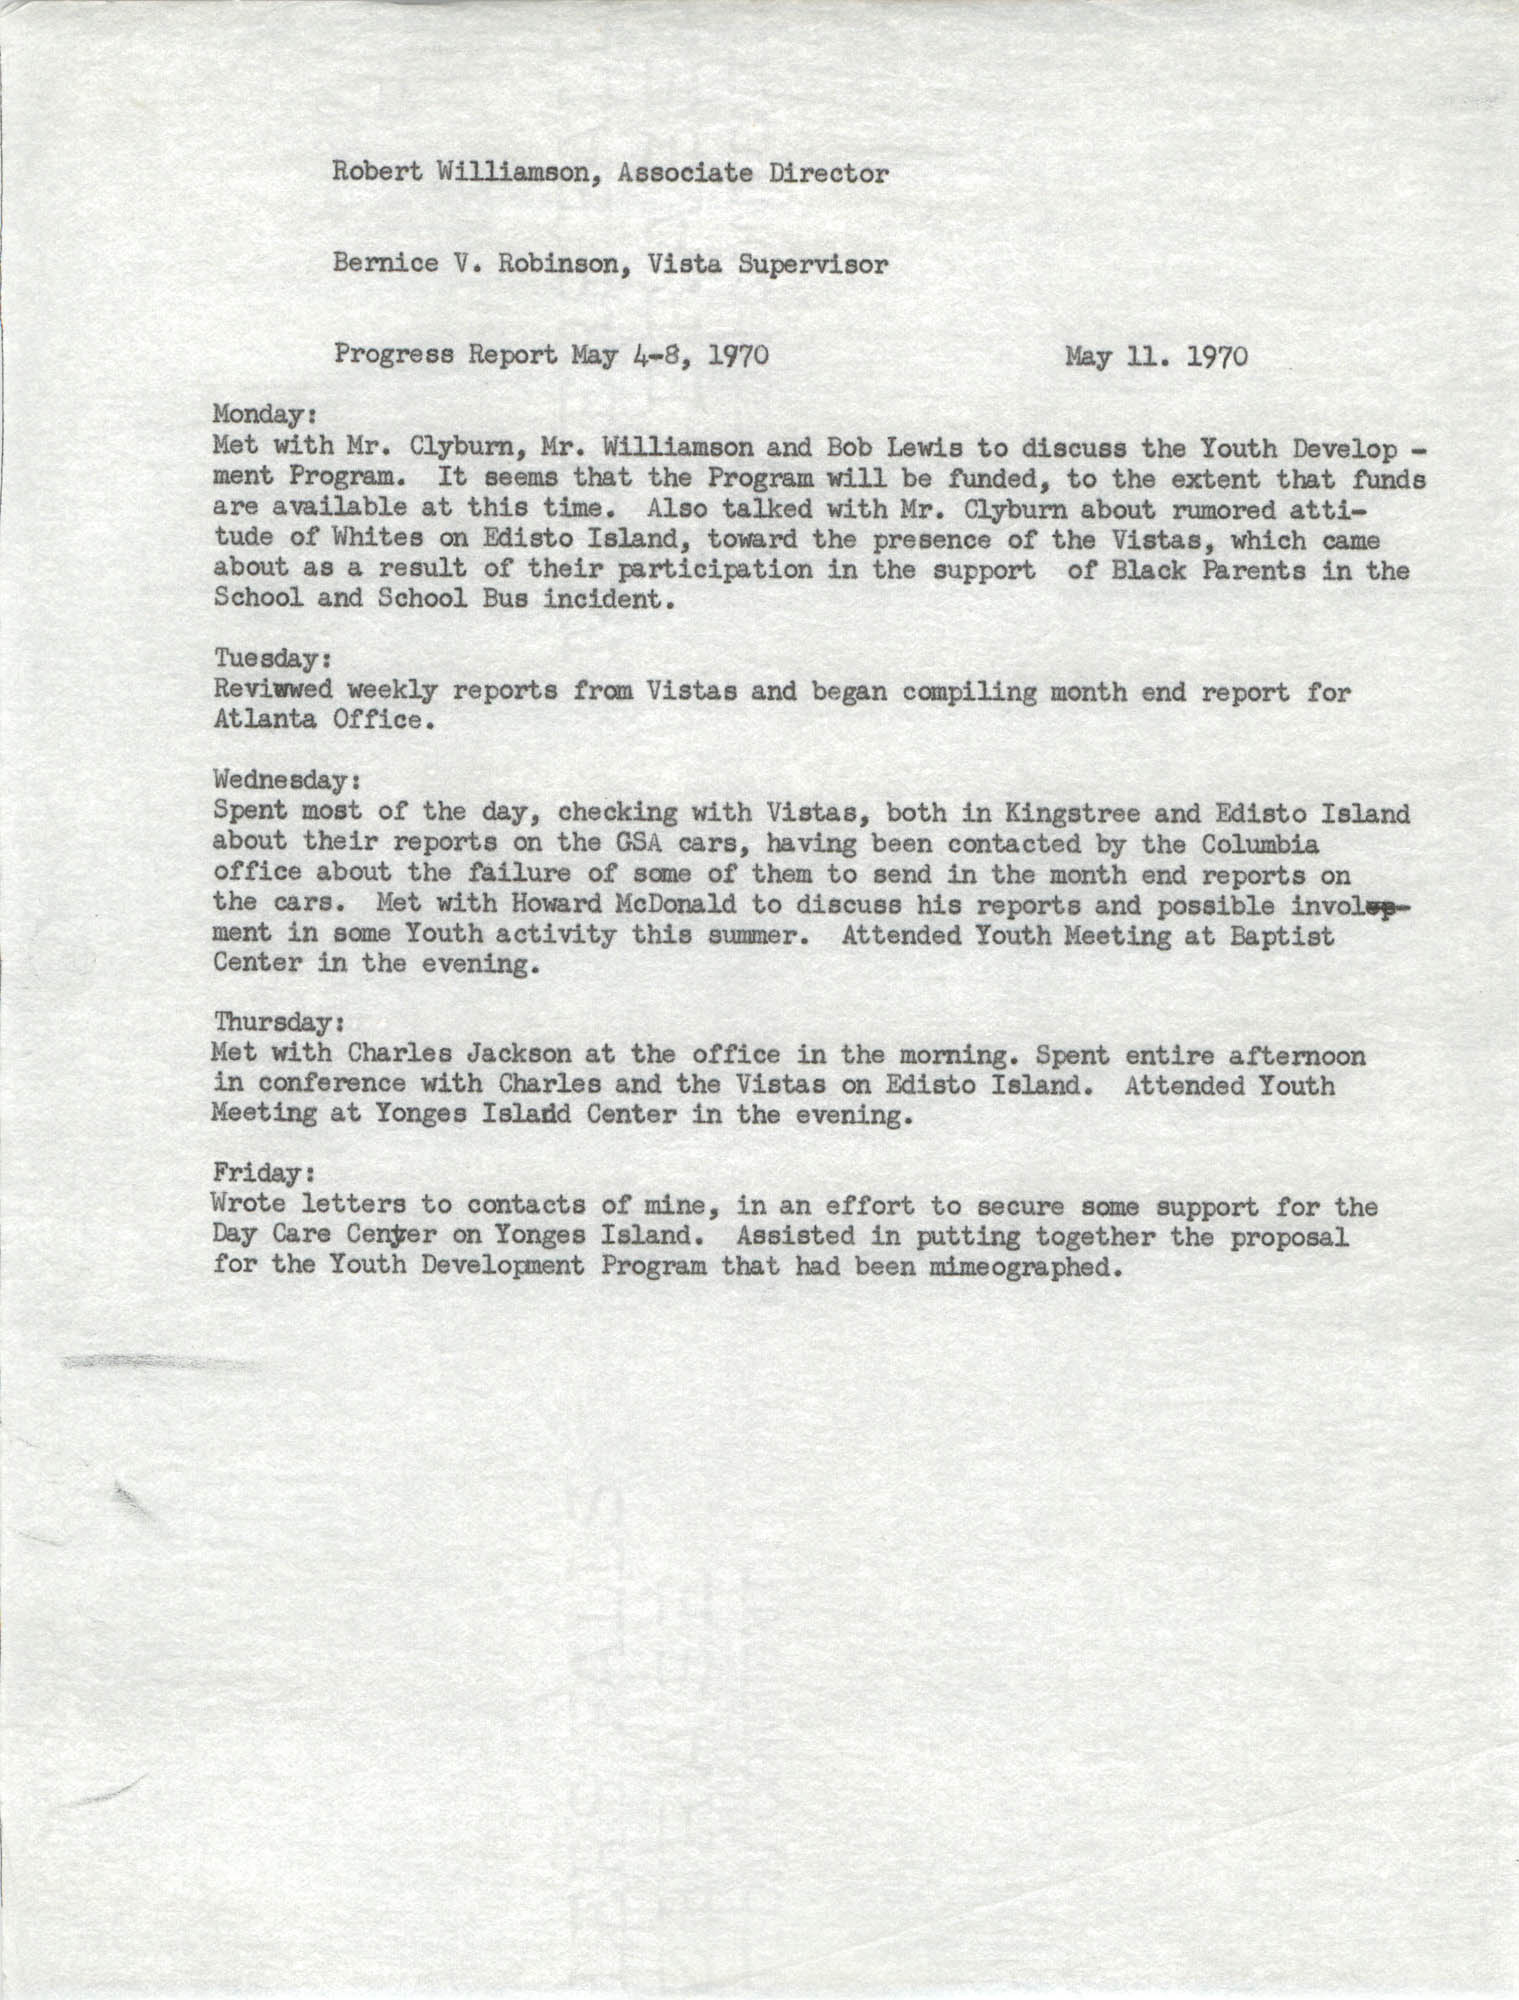 VISTA Progress Report, May 4-8, 1970